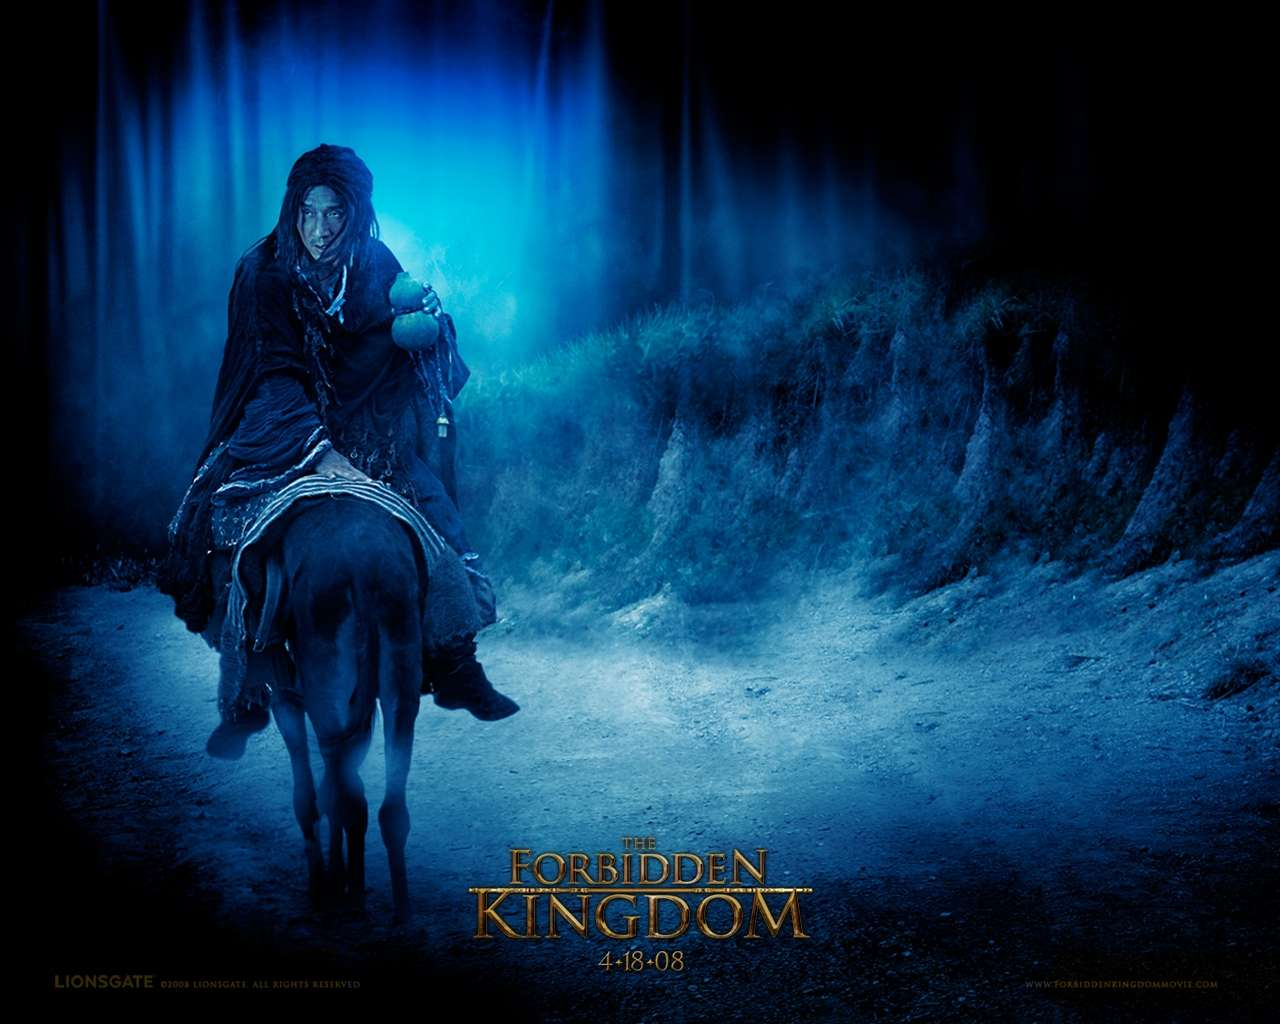 Jackie Chan In The Forbidden Kingdom Wallpaper : Hd Wallpapers